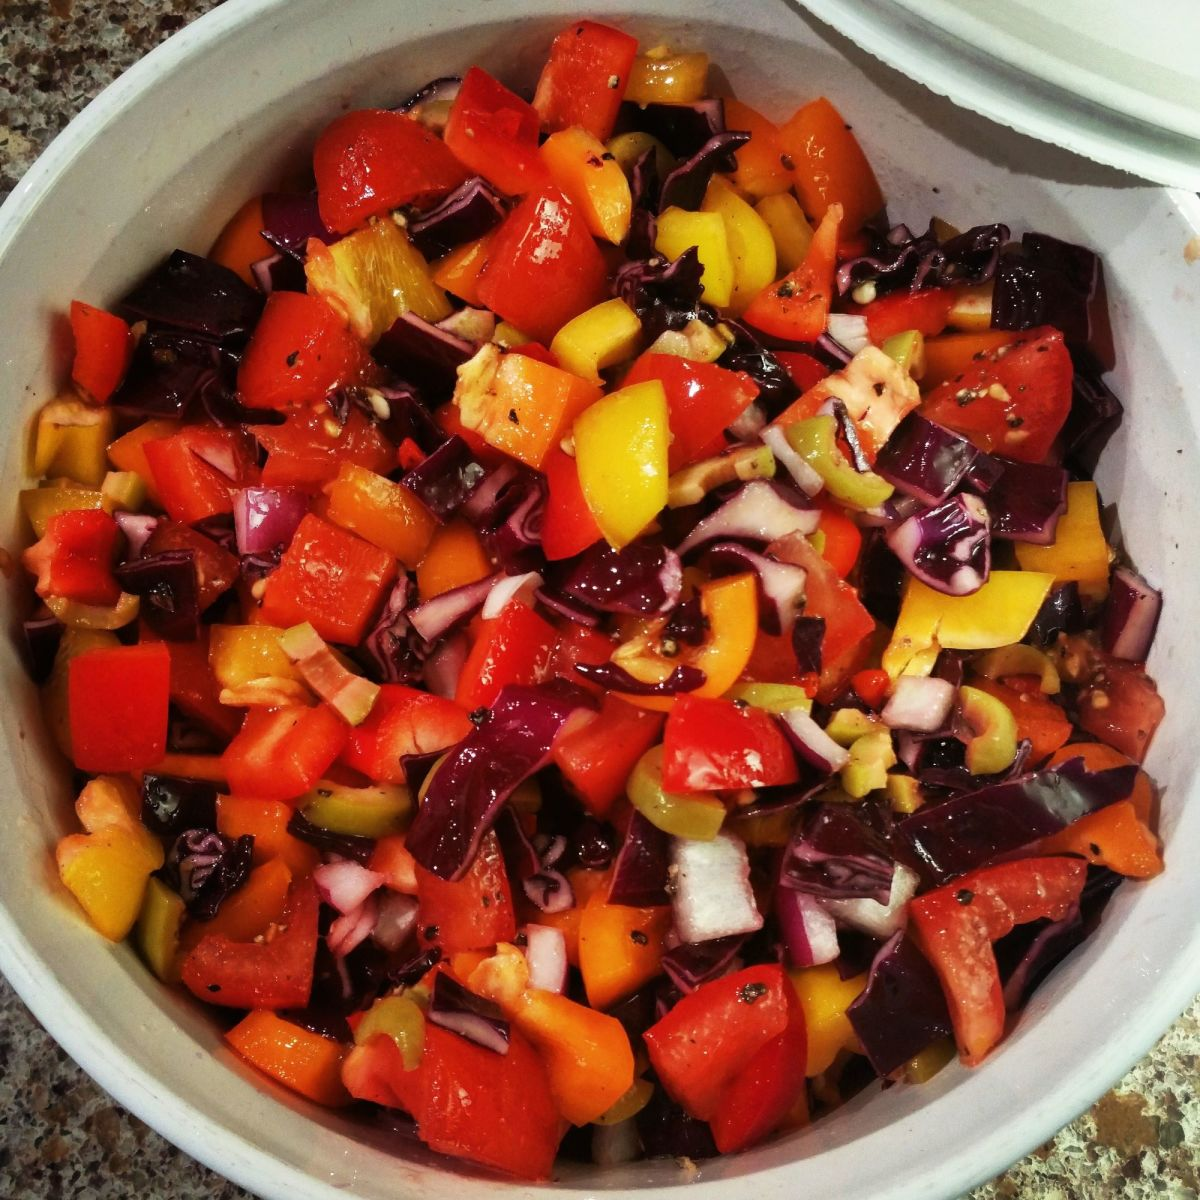 Prepare your salad directly into a casserole dish with a lid. The food will last longer and it creates less waste—no bowl covers or plastic needed.